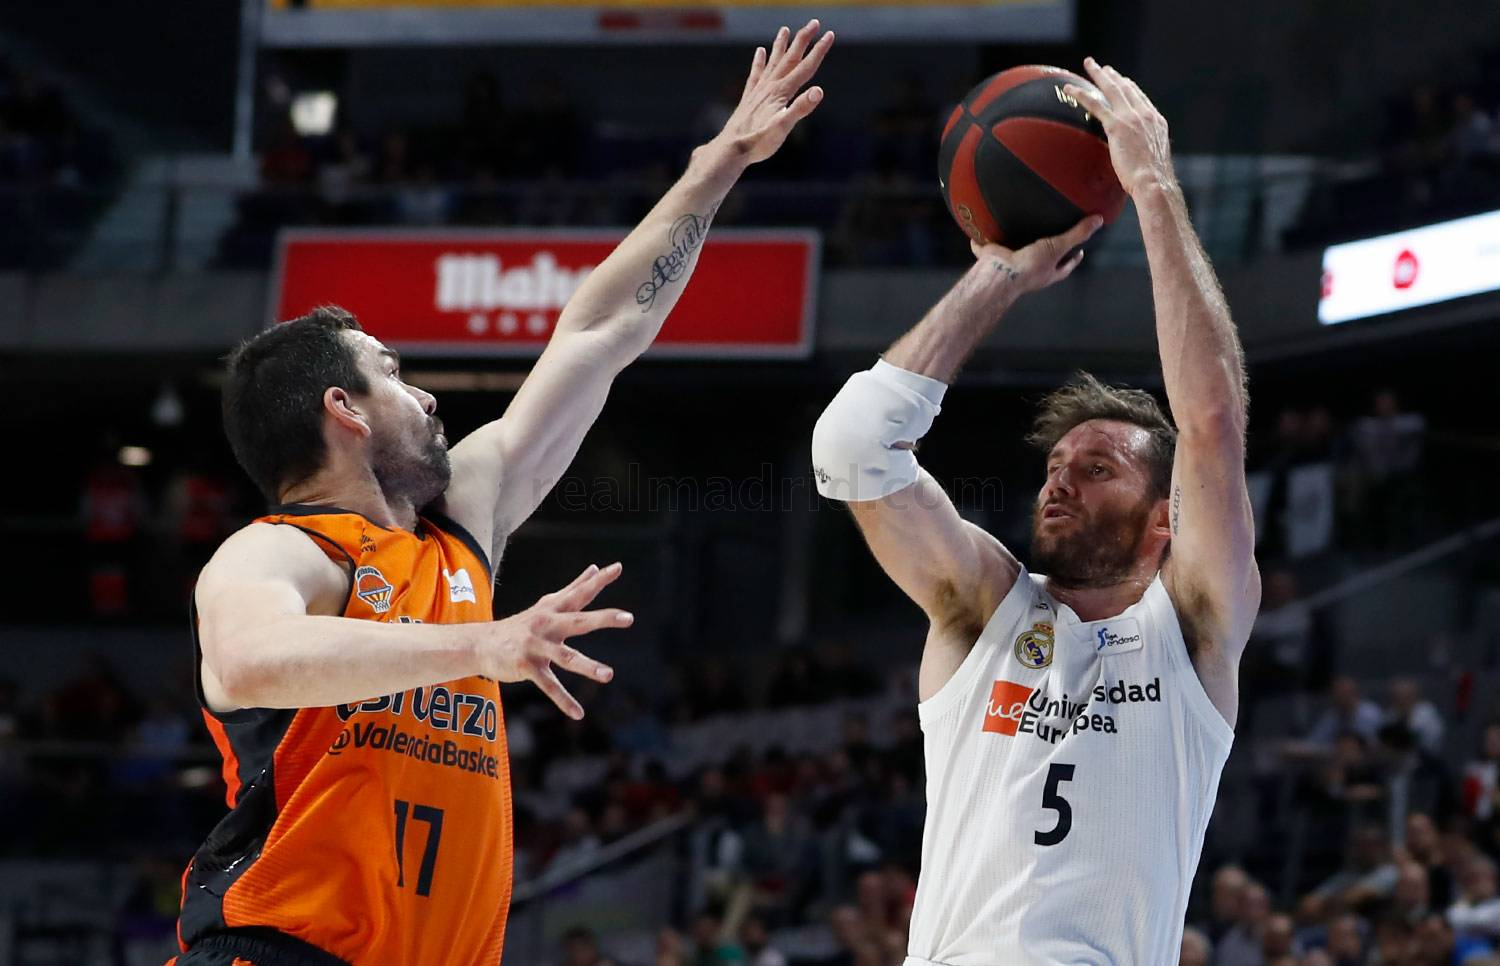 Real Madrid - Real Madrid - Valencia Basket - 21-05-2019